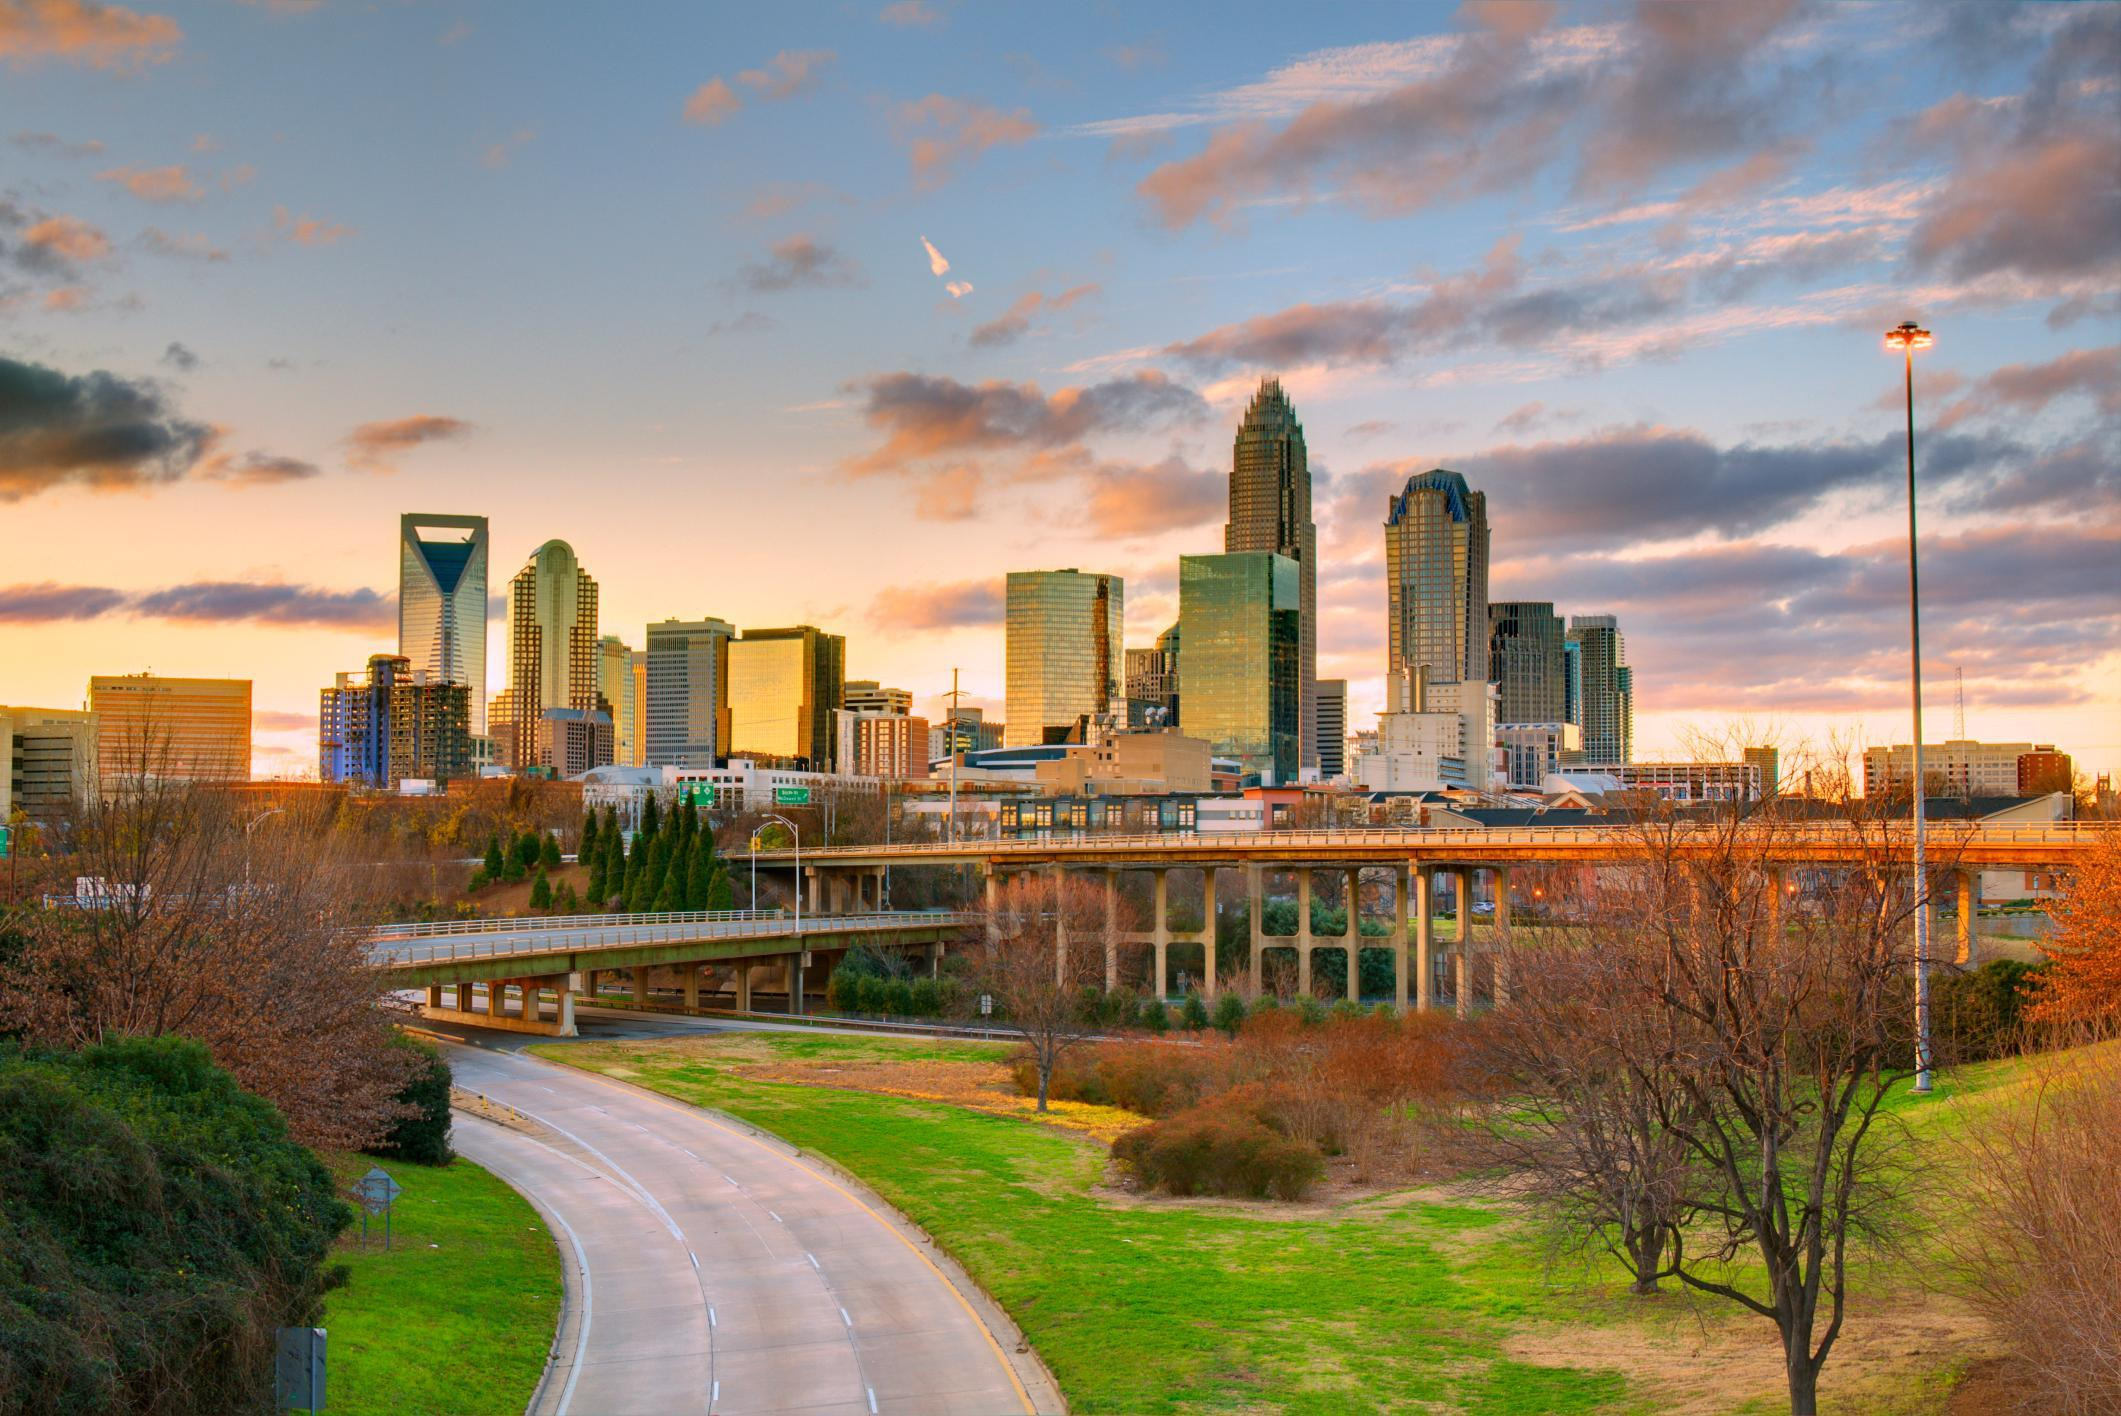 How to Spend 1 Day in Charlotte